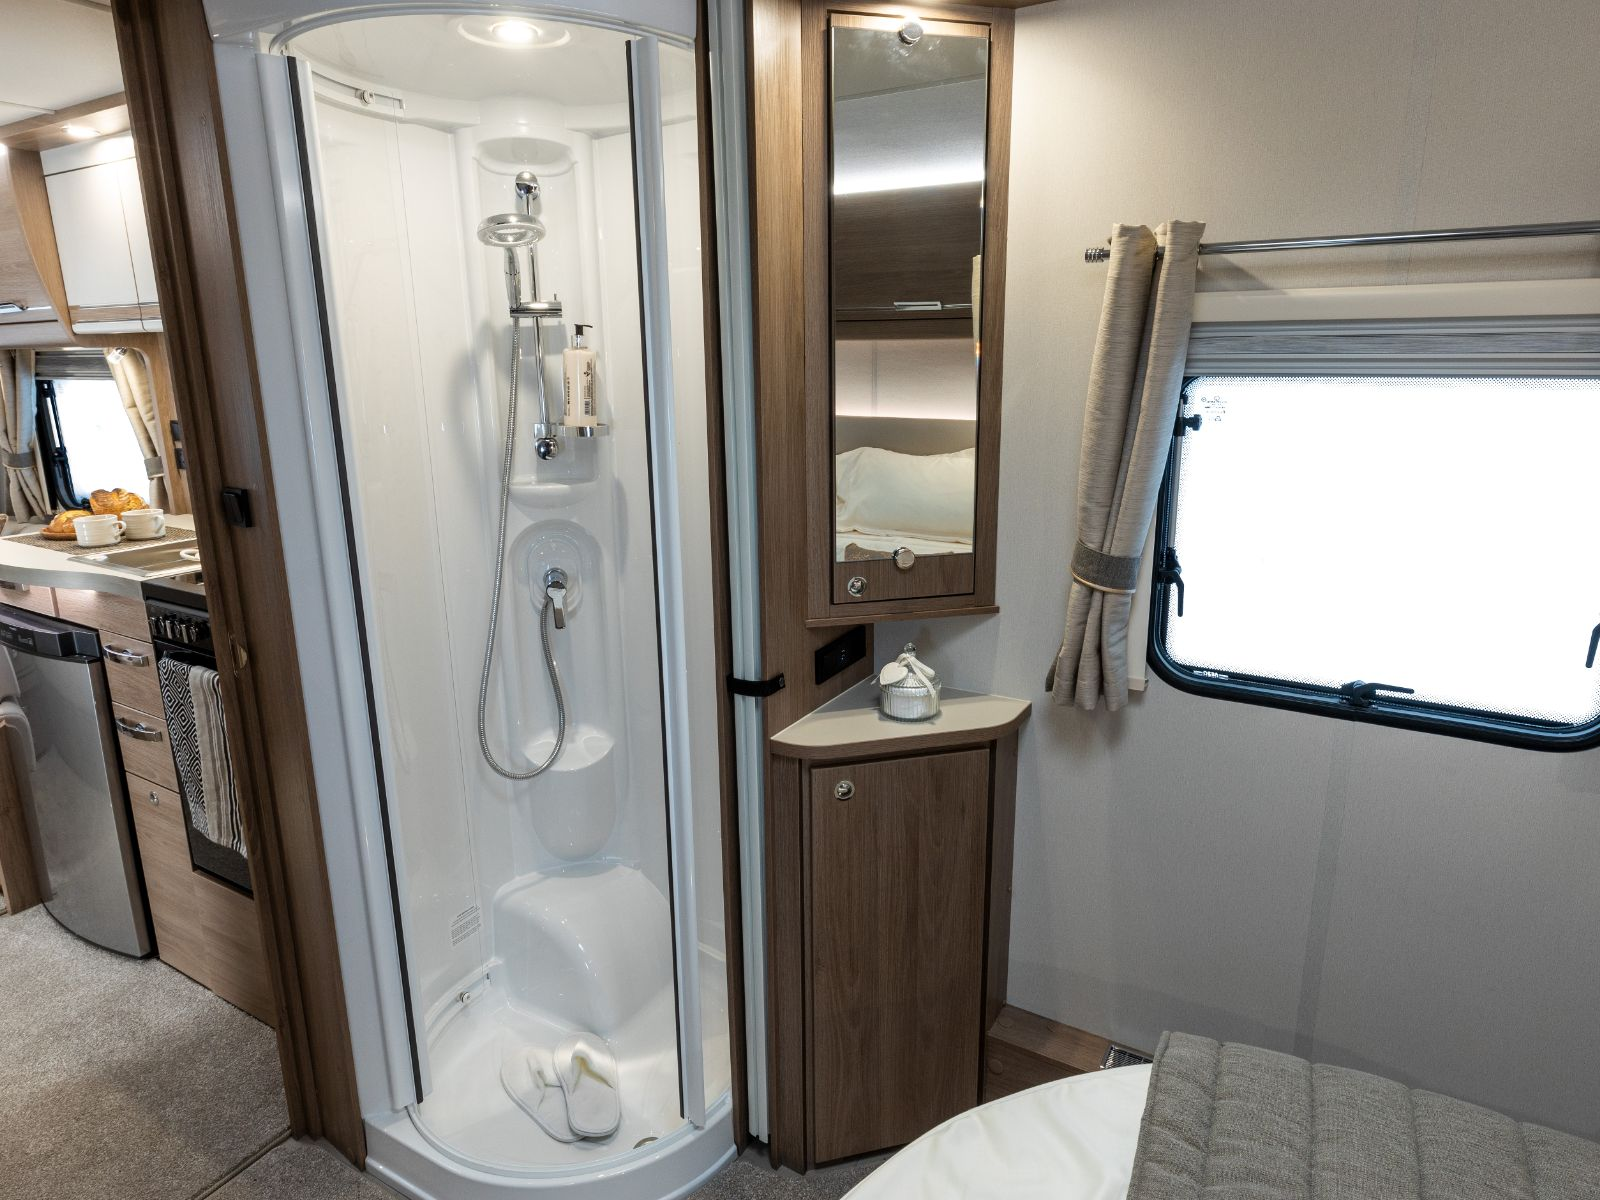 En-suite shower in bedroom with mirror, storage and window on right hand side with view of the kitchen'